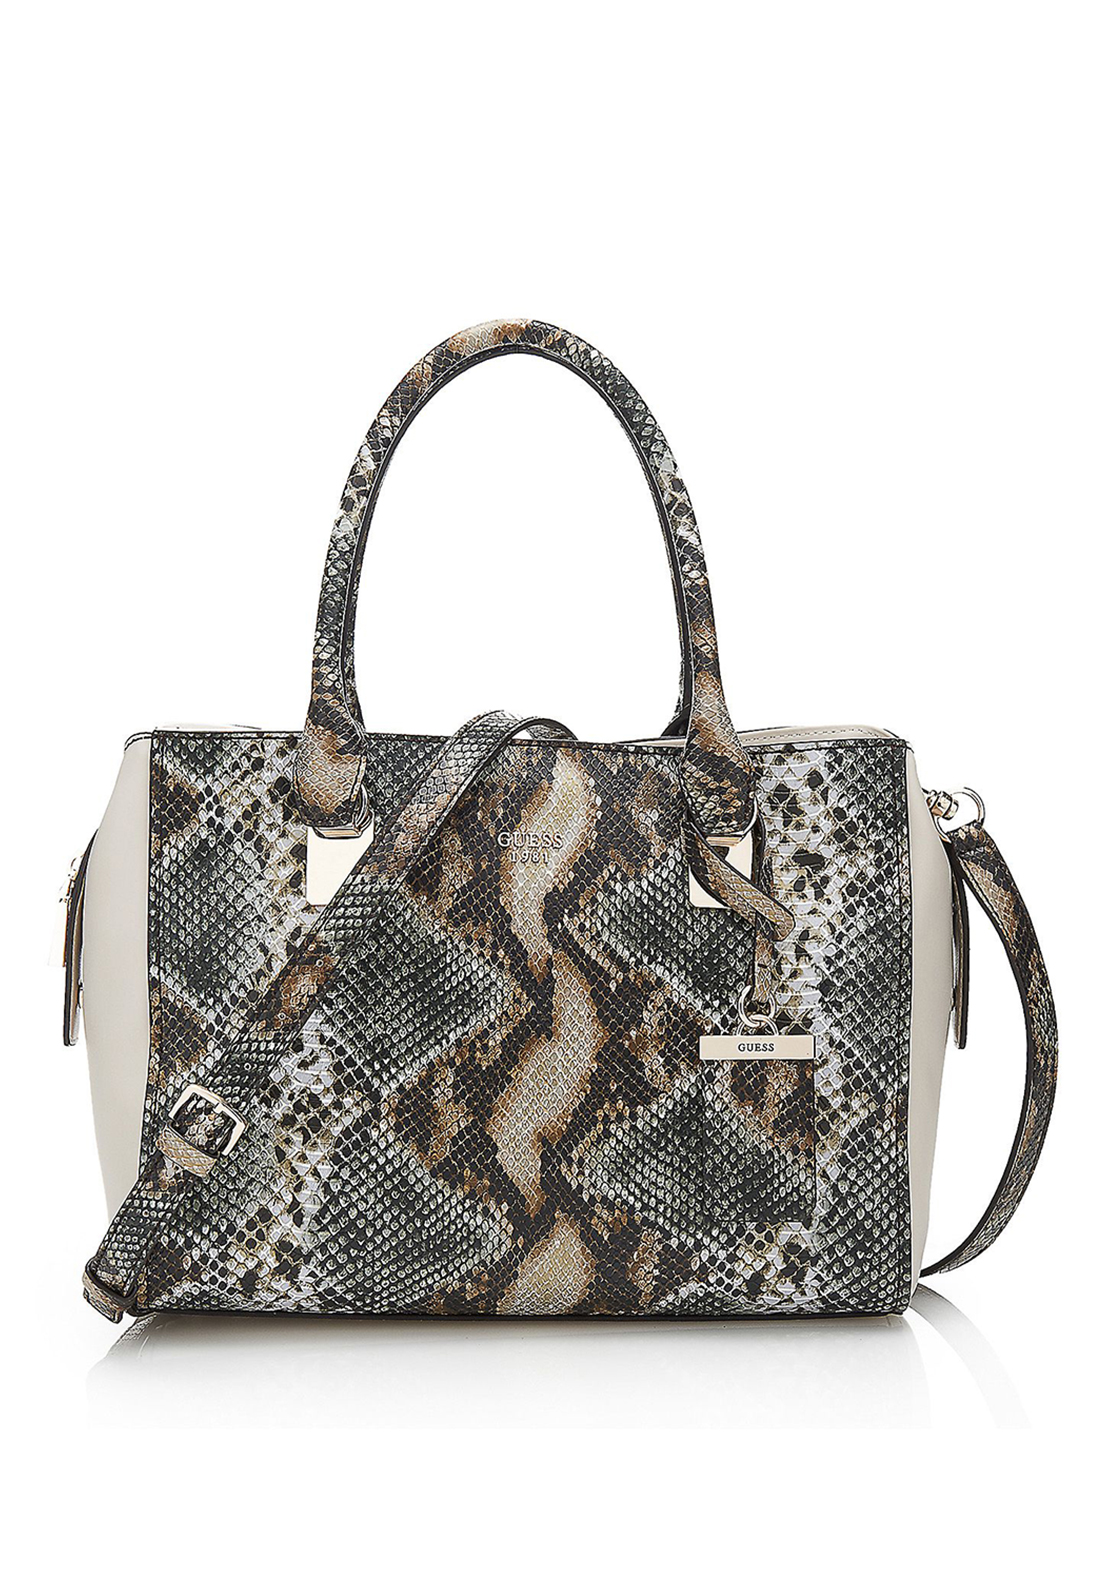 Guess Camylle Reptile Shoulder Bag, Olive Multi